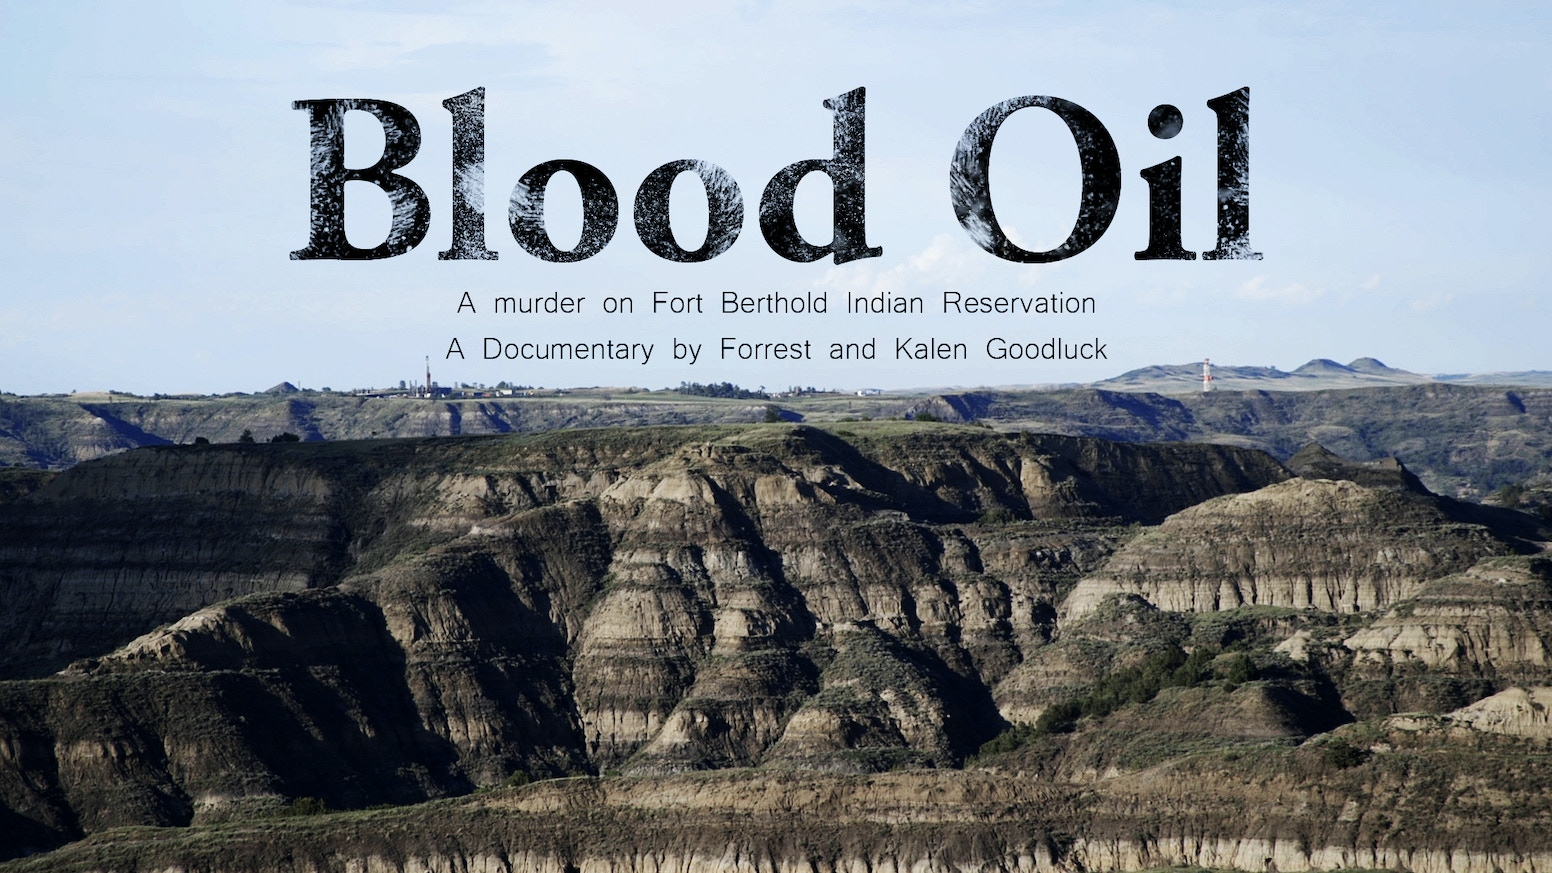 Ex-bounty hunter Indian woman searches for the abandoned body of an oil worker who was murdered on her own tribal land.